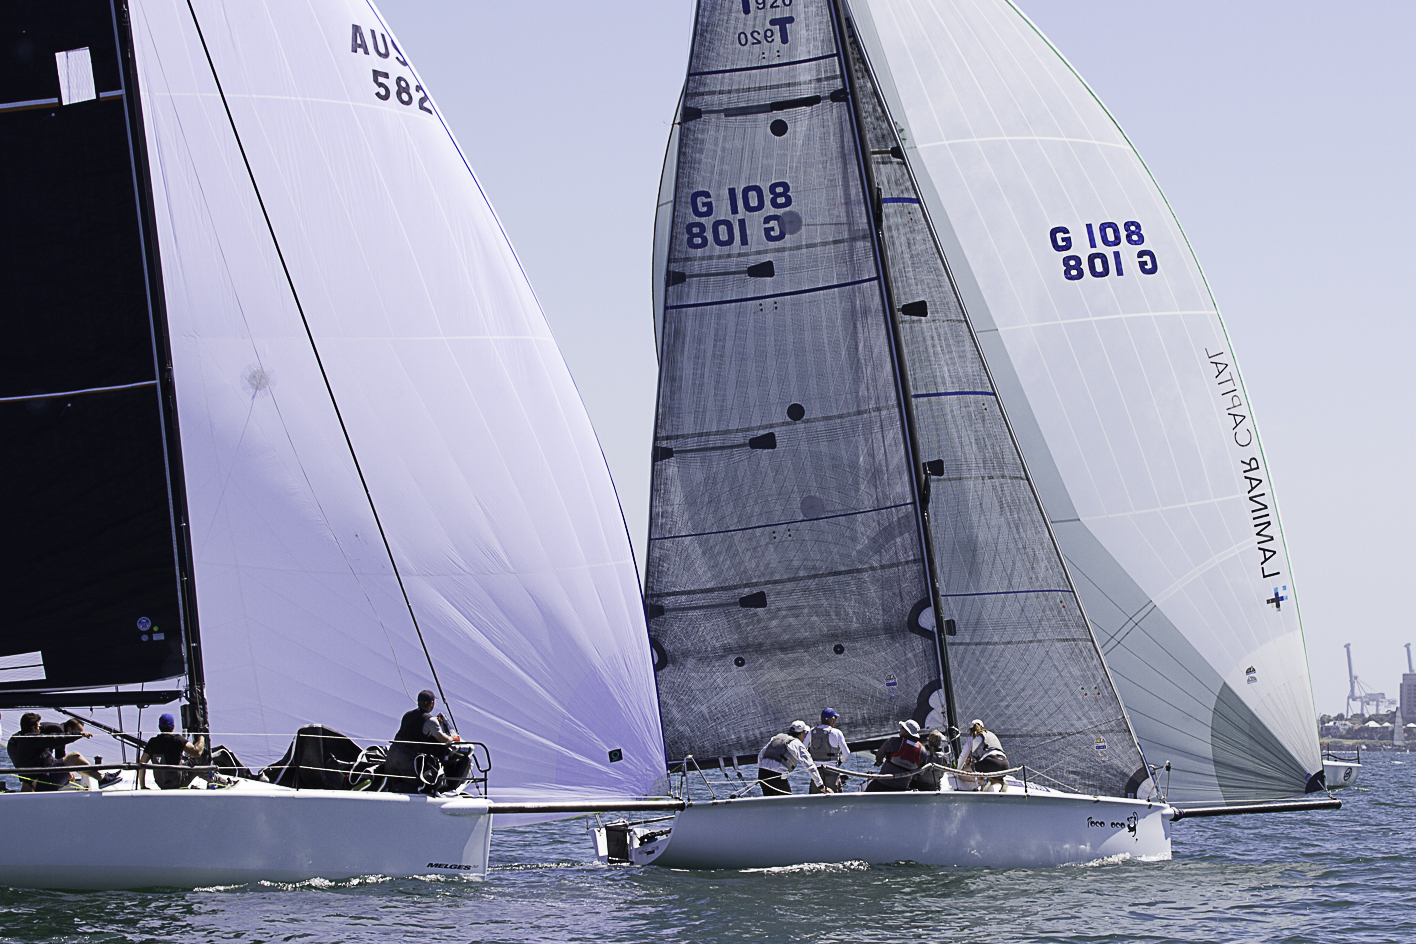 The Geelong based Poco Loco had some great battles with the two Melges 32's in the fleet to claim three AMS wins from three starts. Photo Bernie Kaaks.